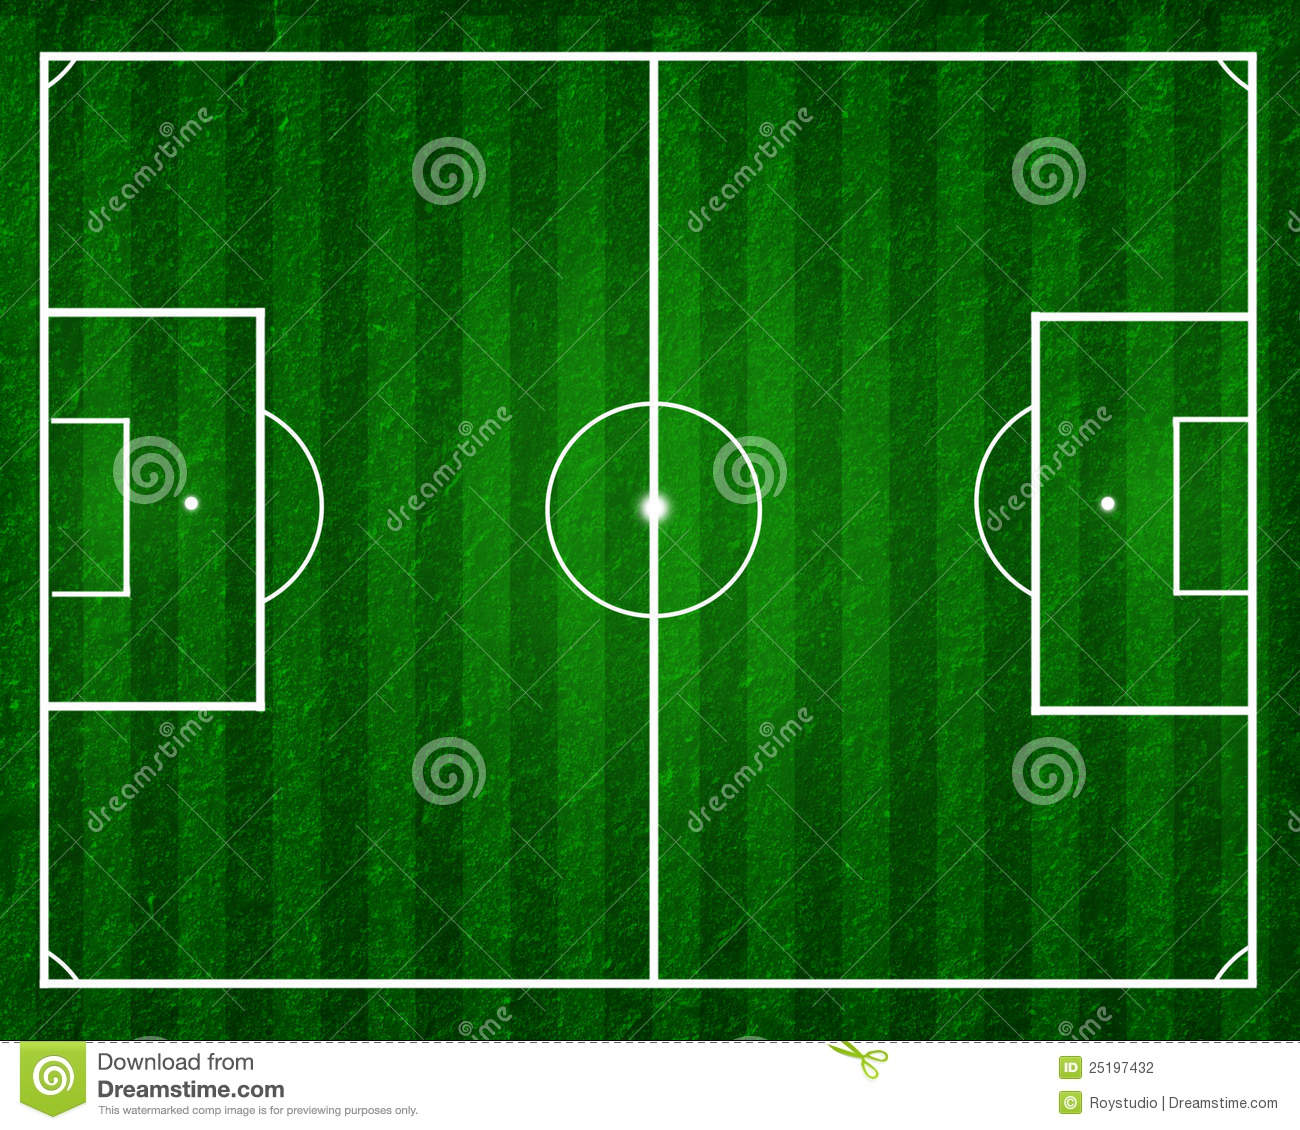 football field or soccer field stock illustration